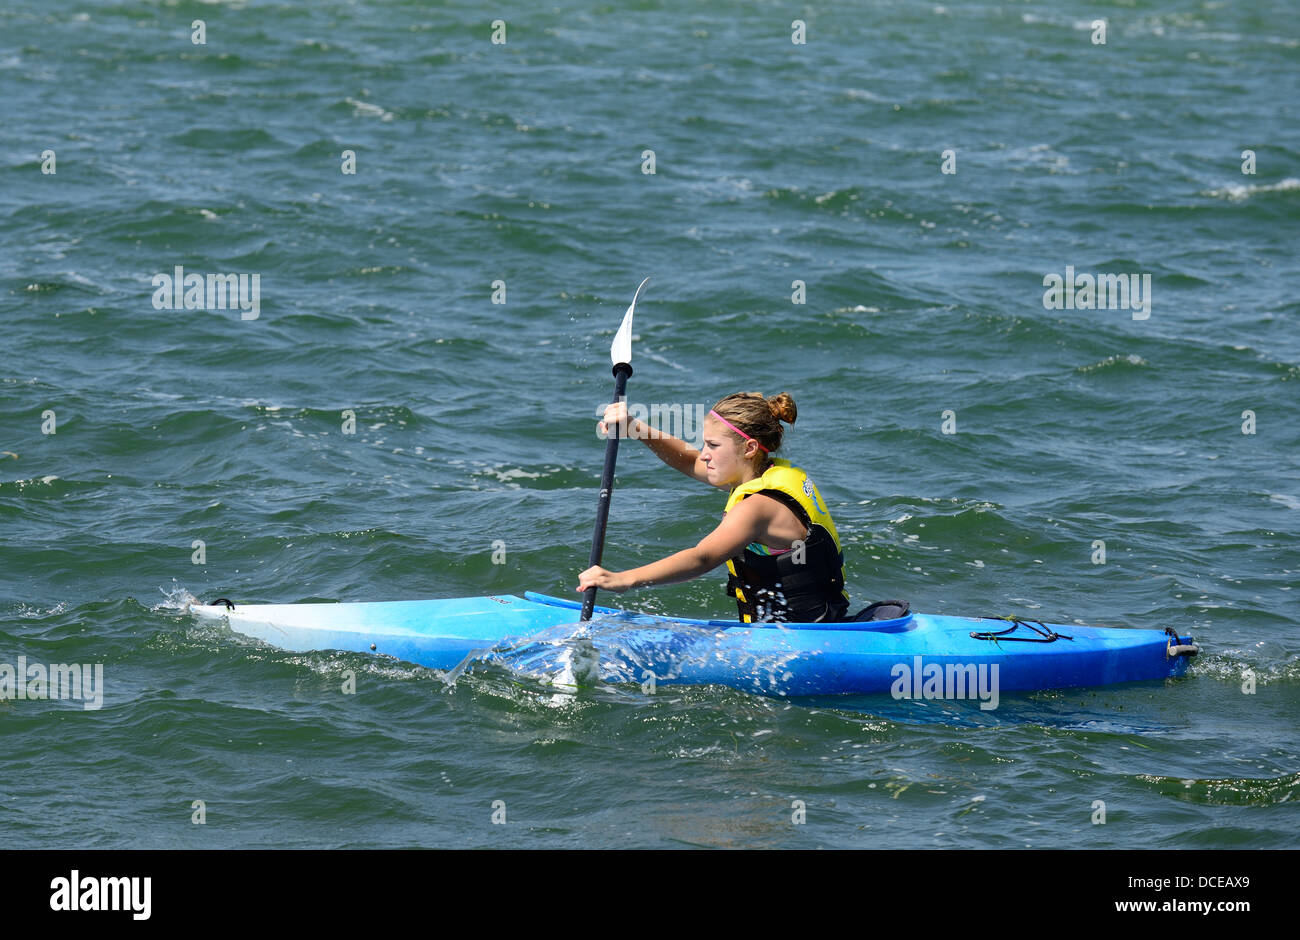 Teen girl on a kayak in a lake. - Stock Image